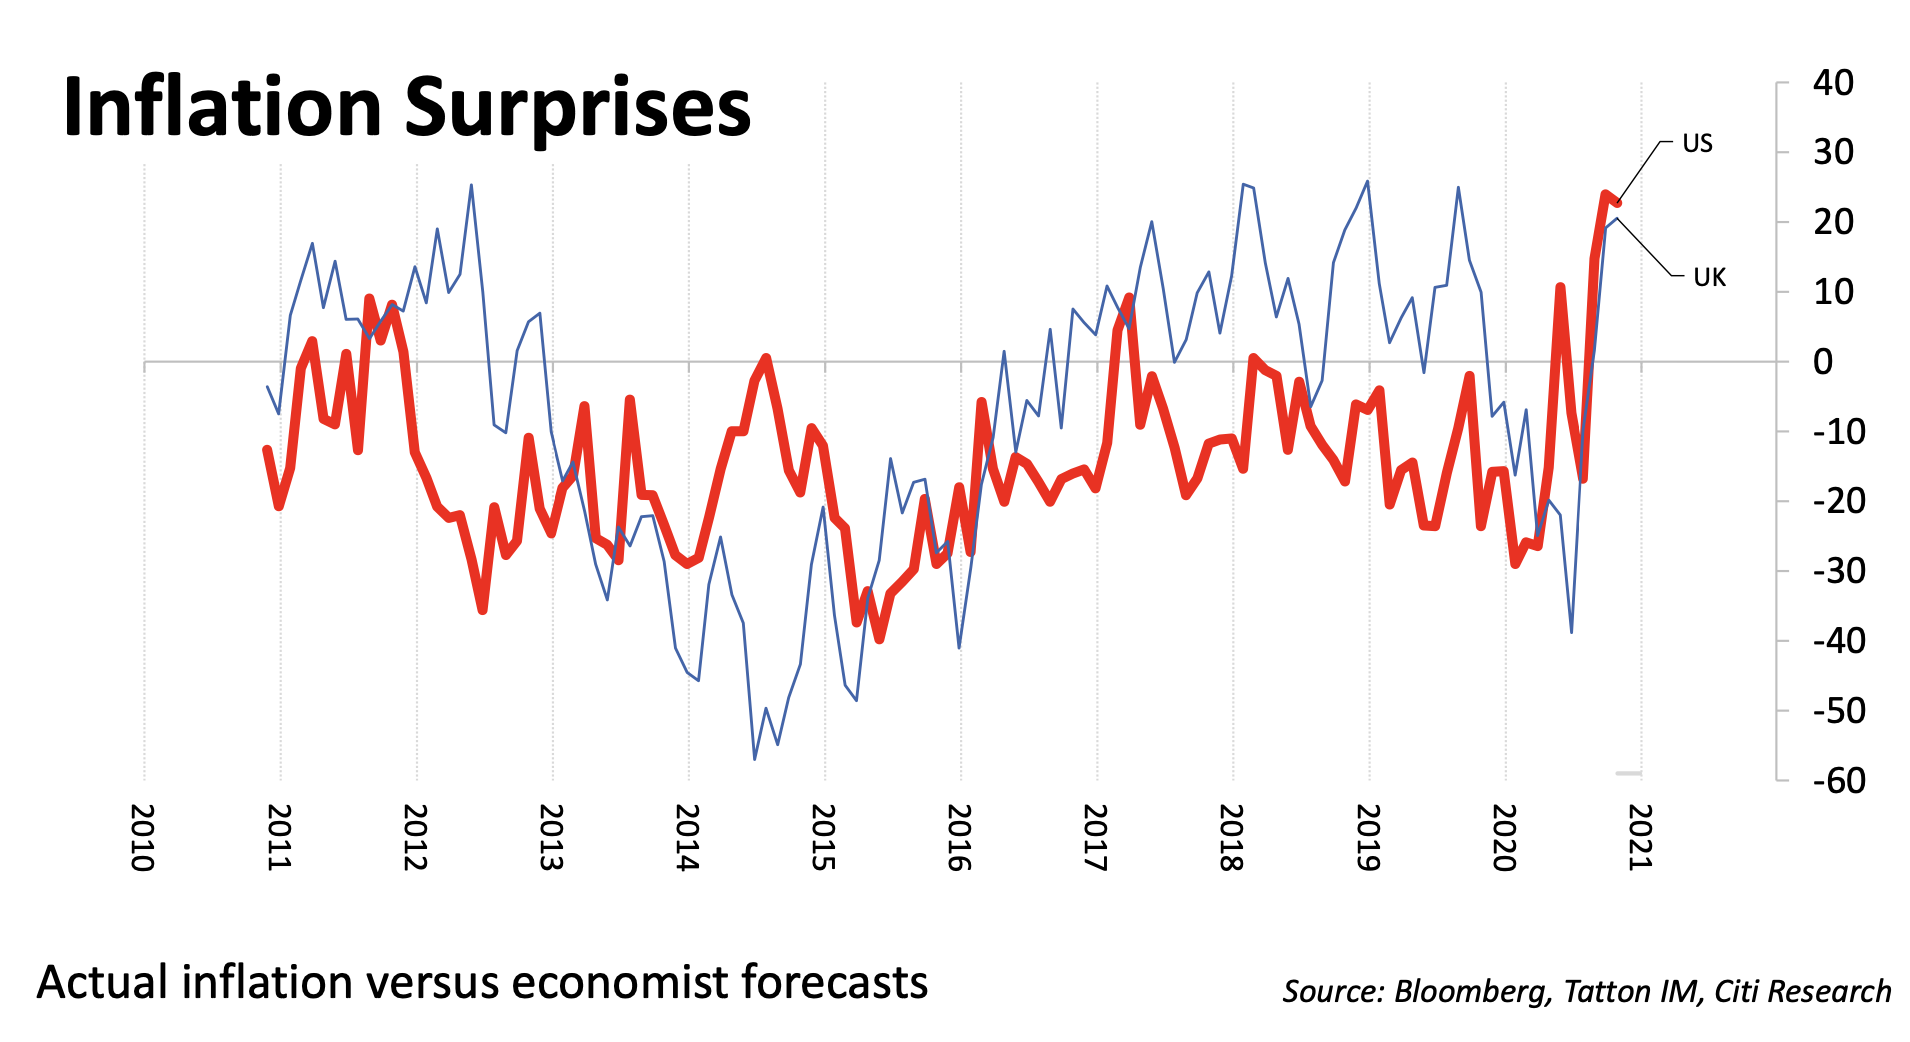 Actual inflation versus economists forecasts